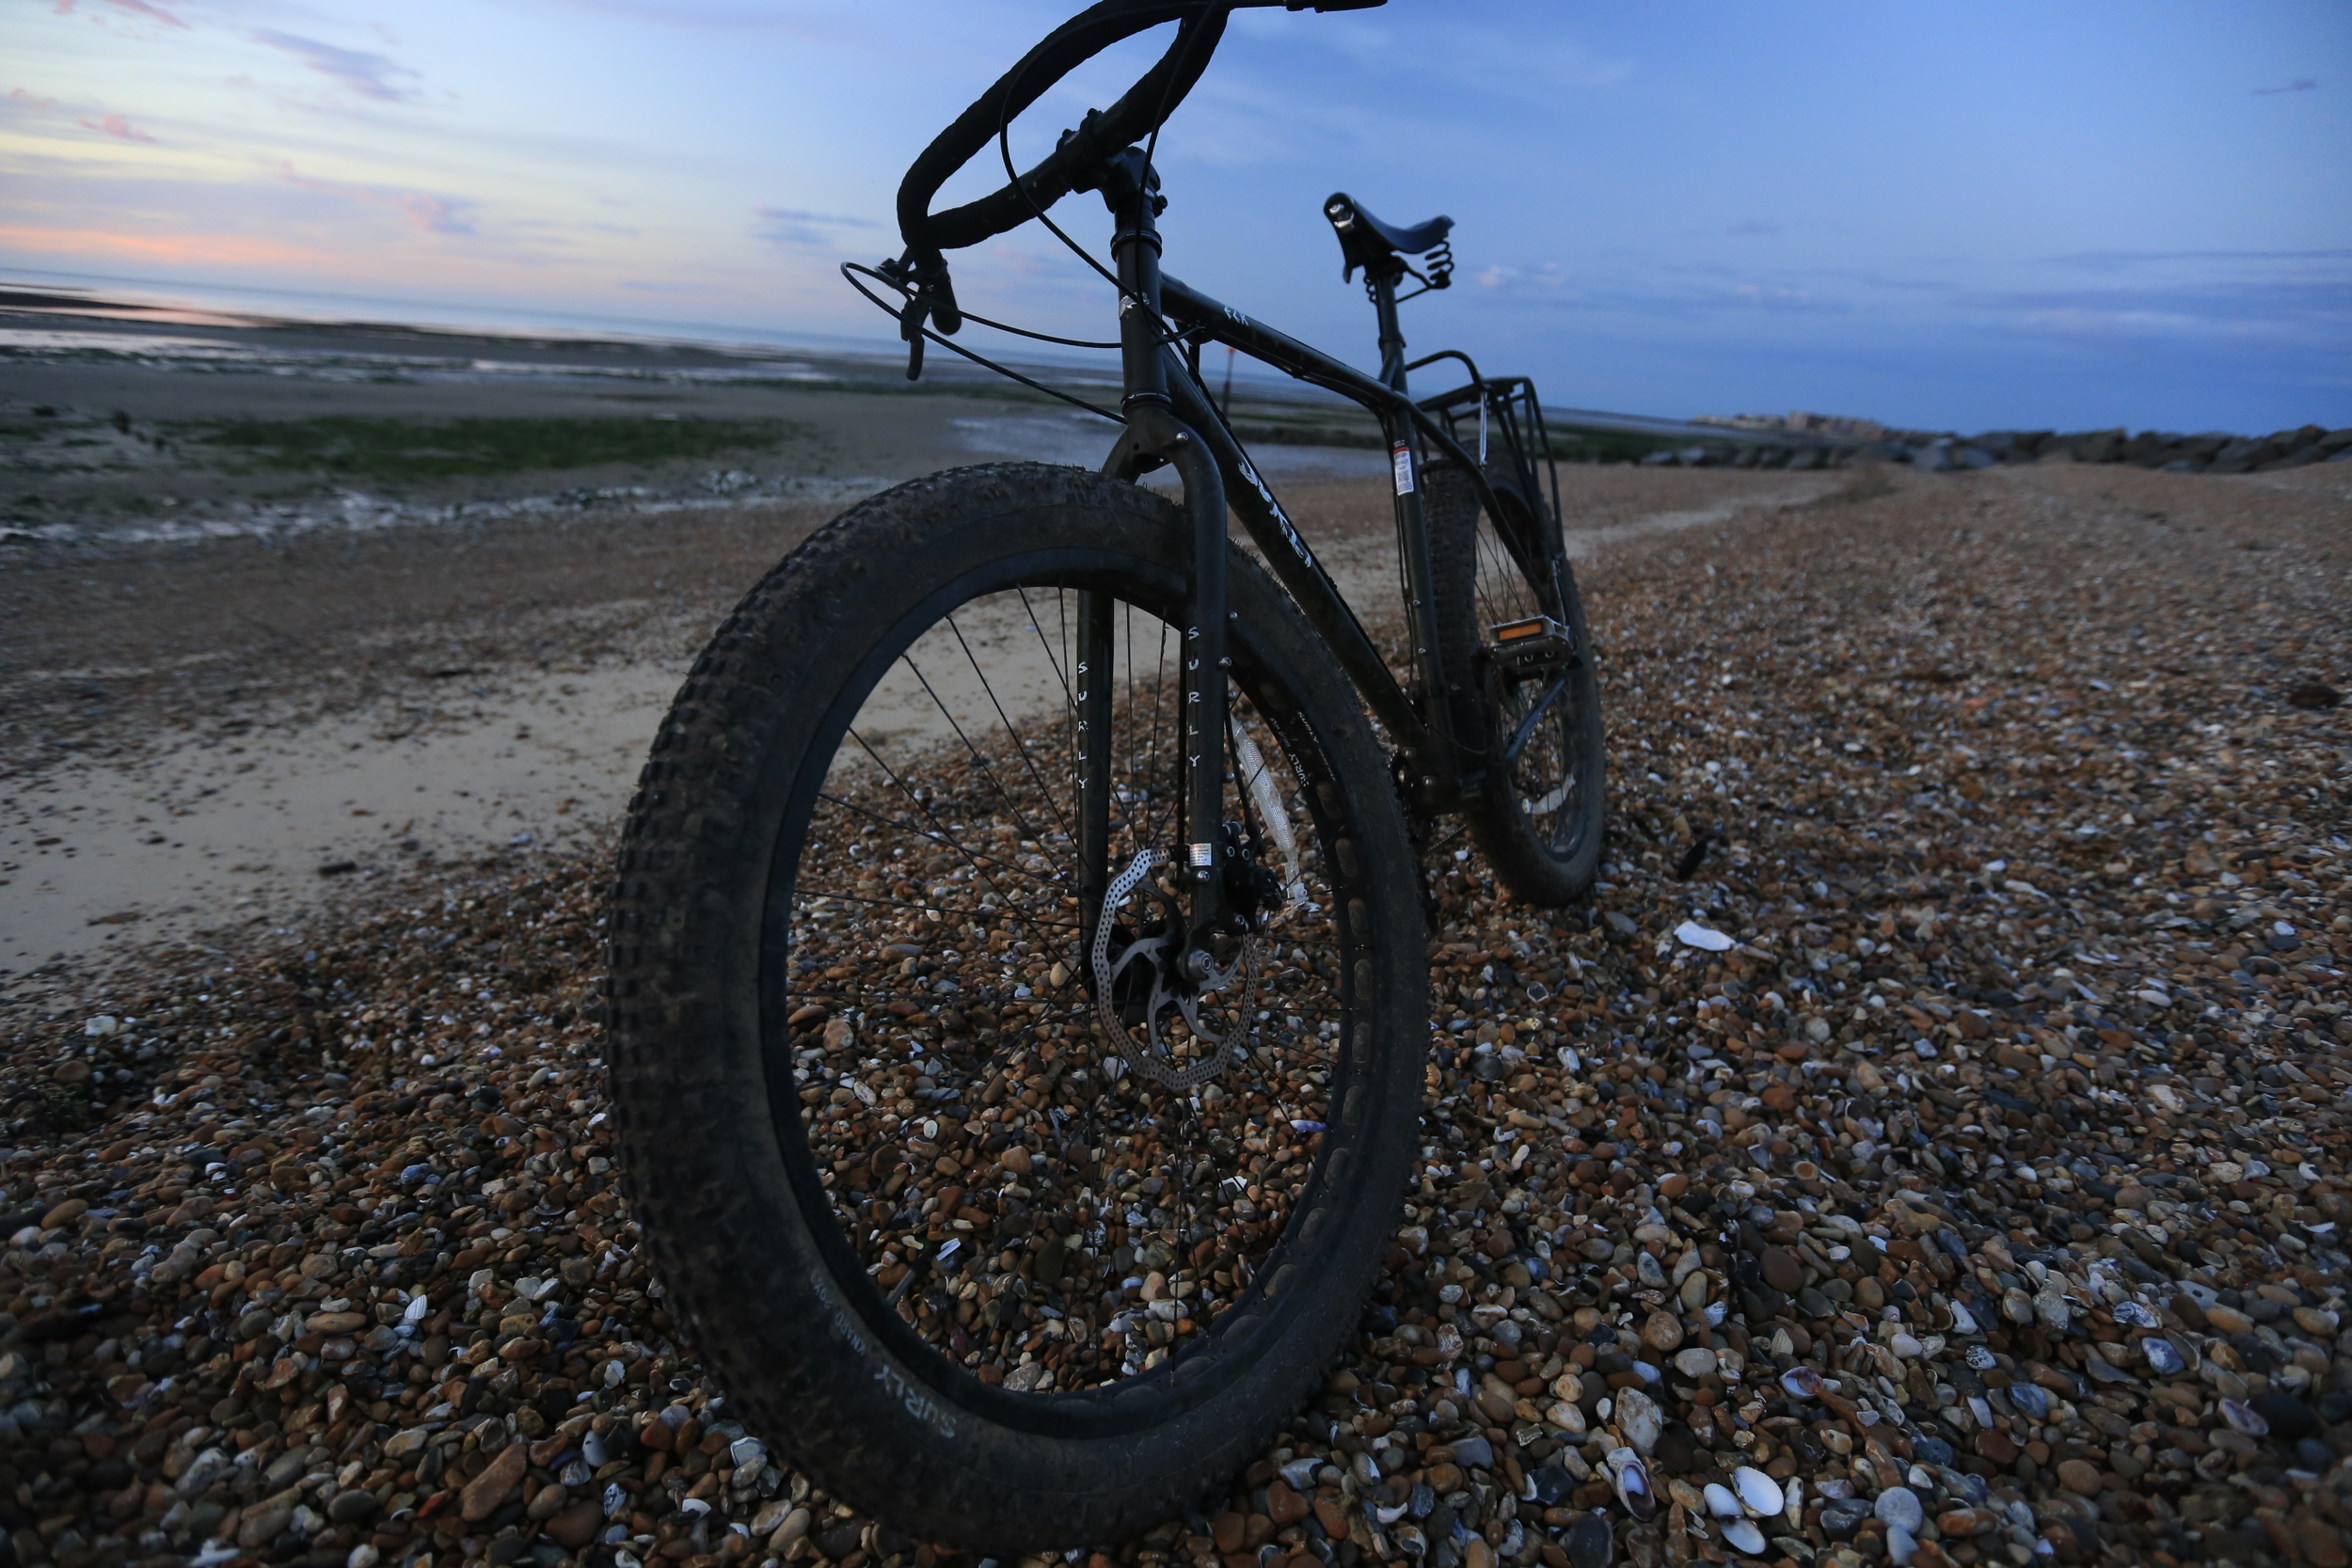 surly, surly ecr, surly bikes, bicycle touring apocalypse, bikepacking, travel blog, cycling blog, sponsored cyclist, adventure cycling, cycling holidays, cycling vacation